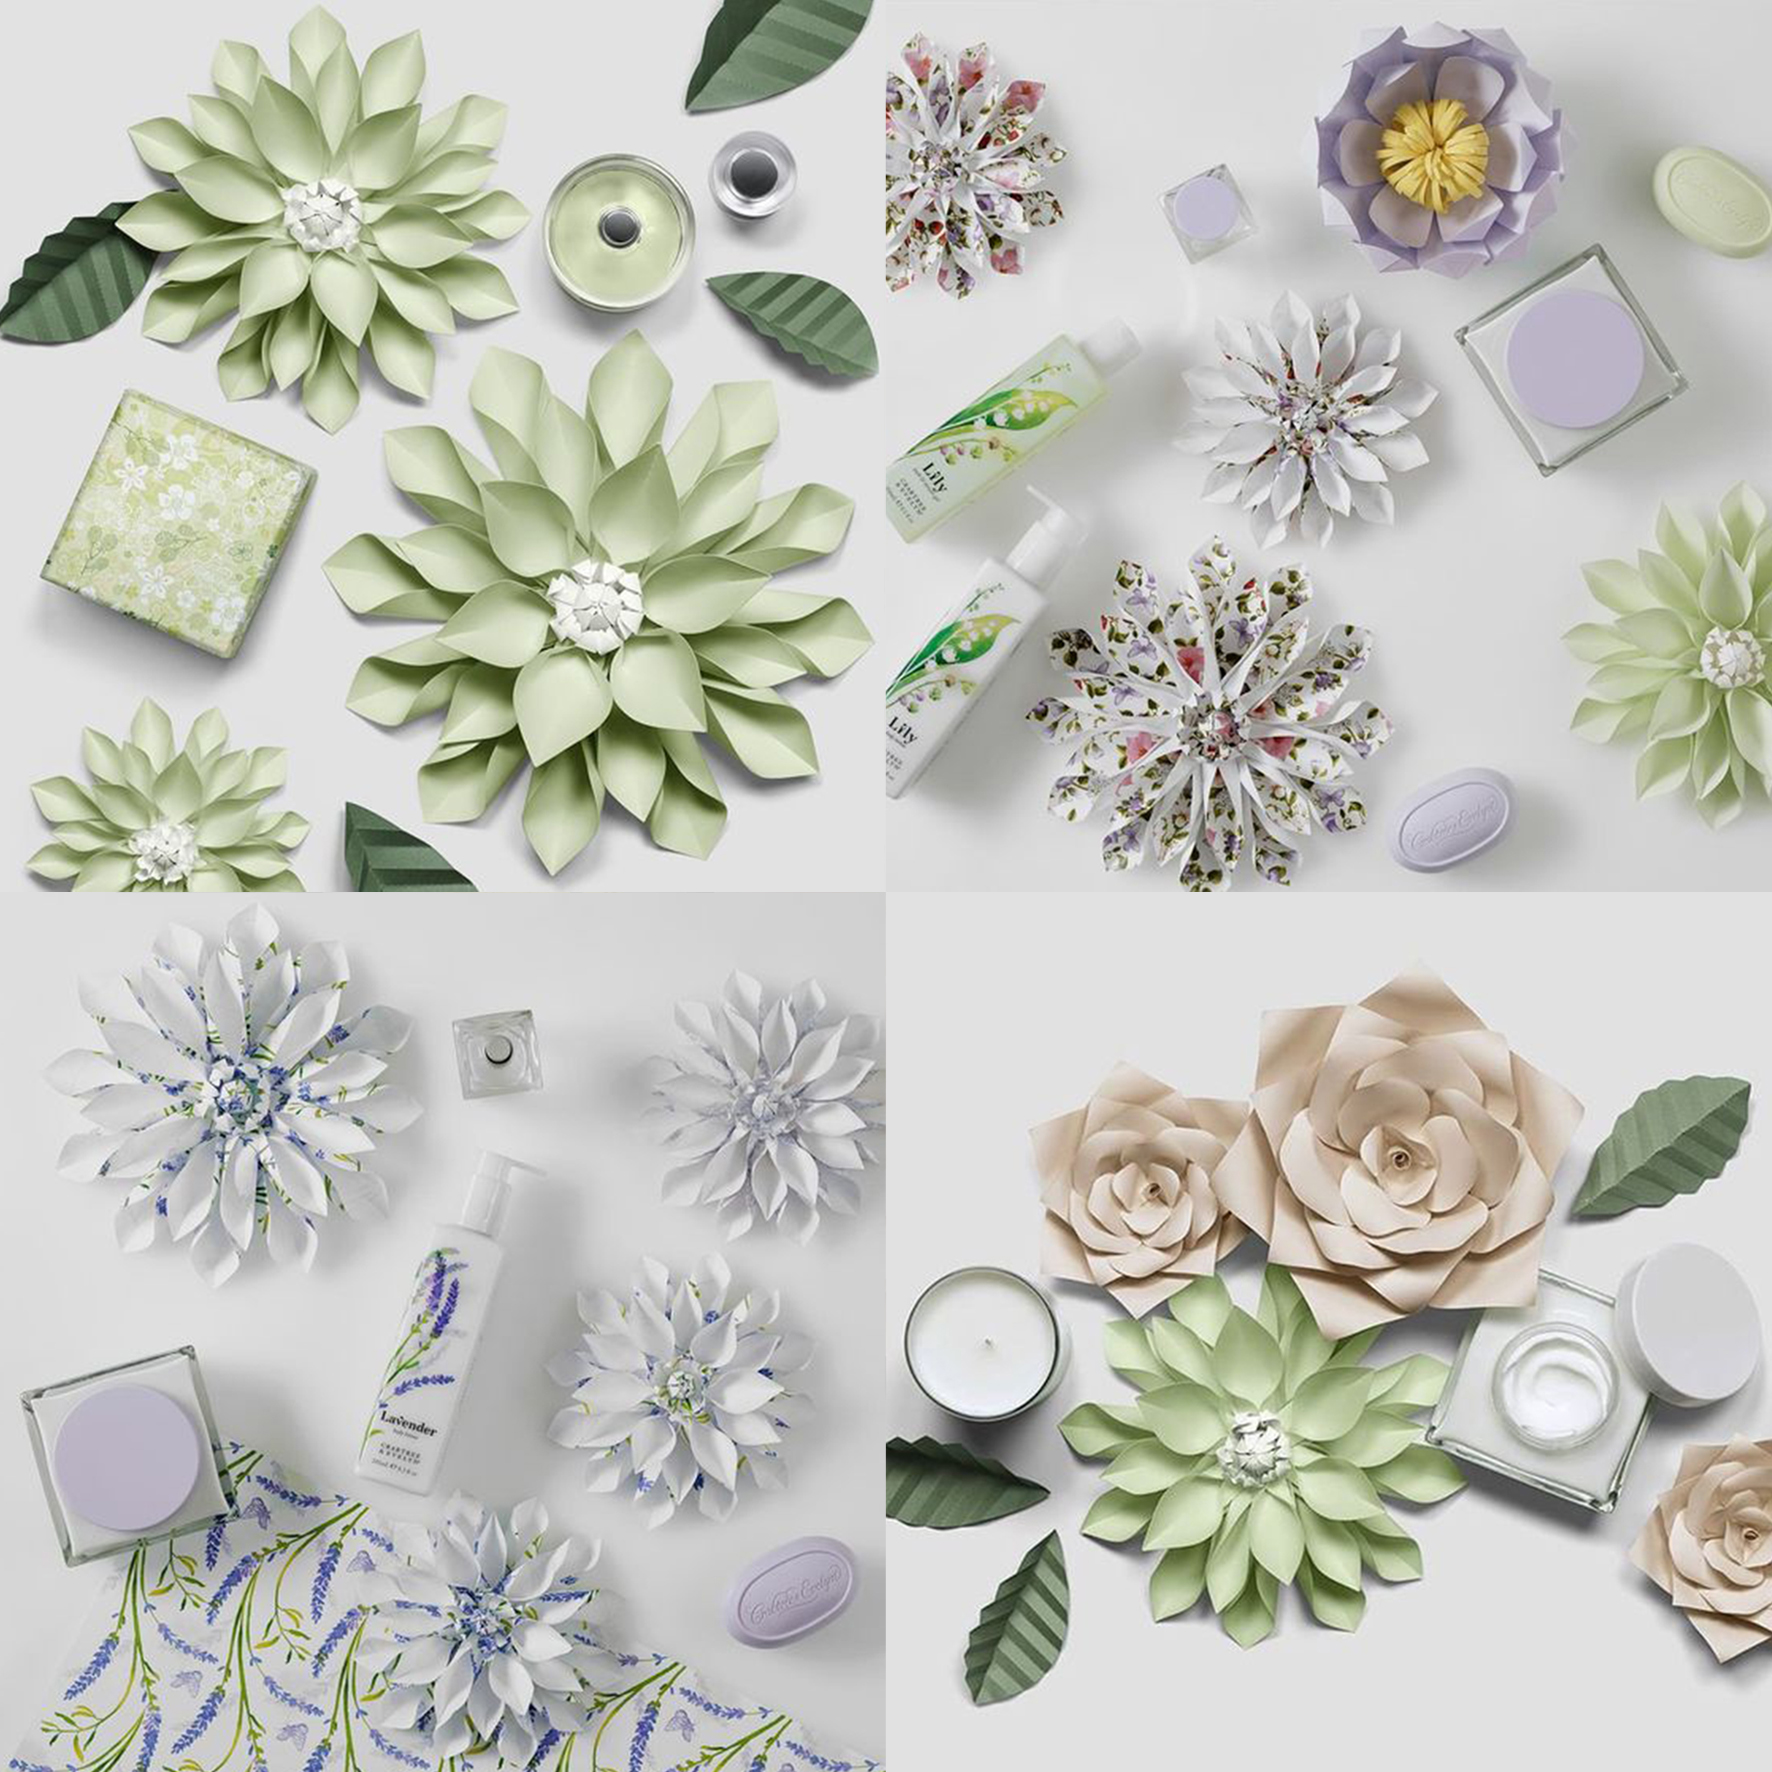 crabtree-and-evelyn-paper-flowers-and-product